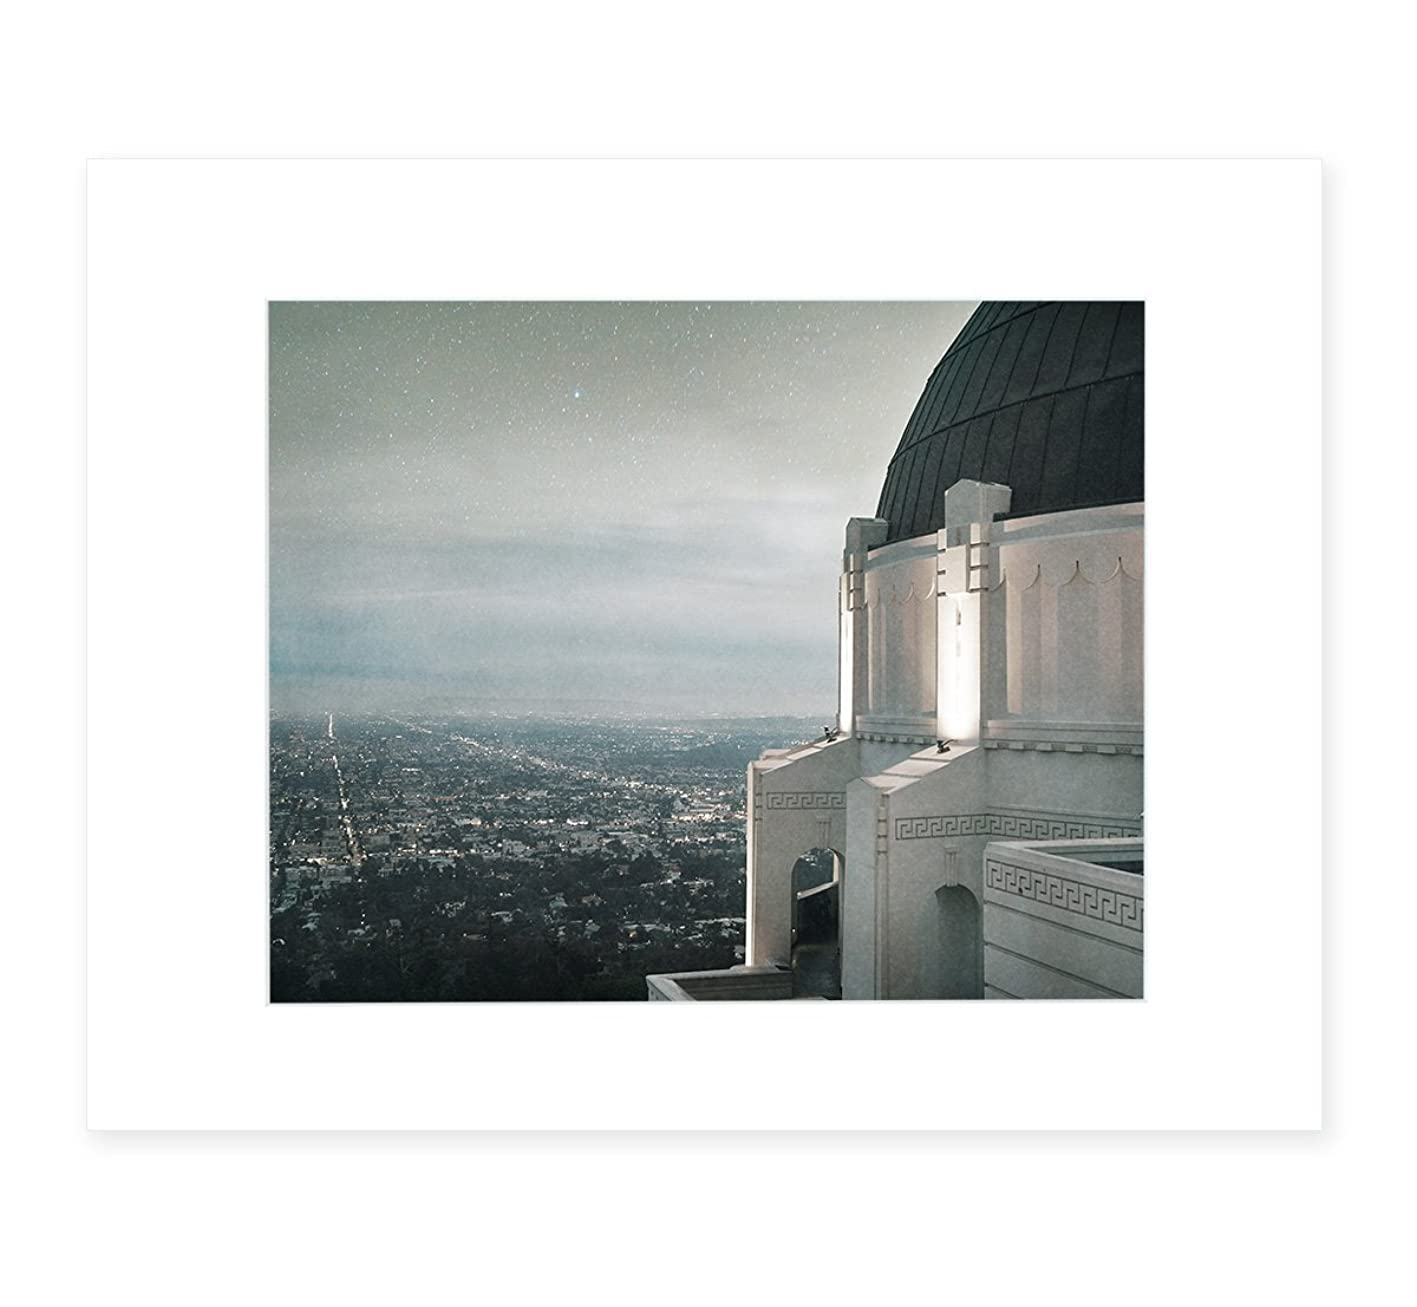 Los Angeles City Art Landscape, Griffith Observatory Skyline Urban Wall Decor, 8x10 Matted Photographic Print (fits 11x14 frame), 'The Sky At Night' jgylvpwfvts611